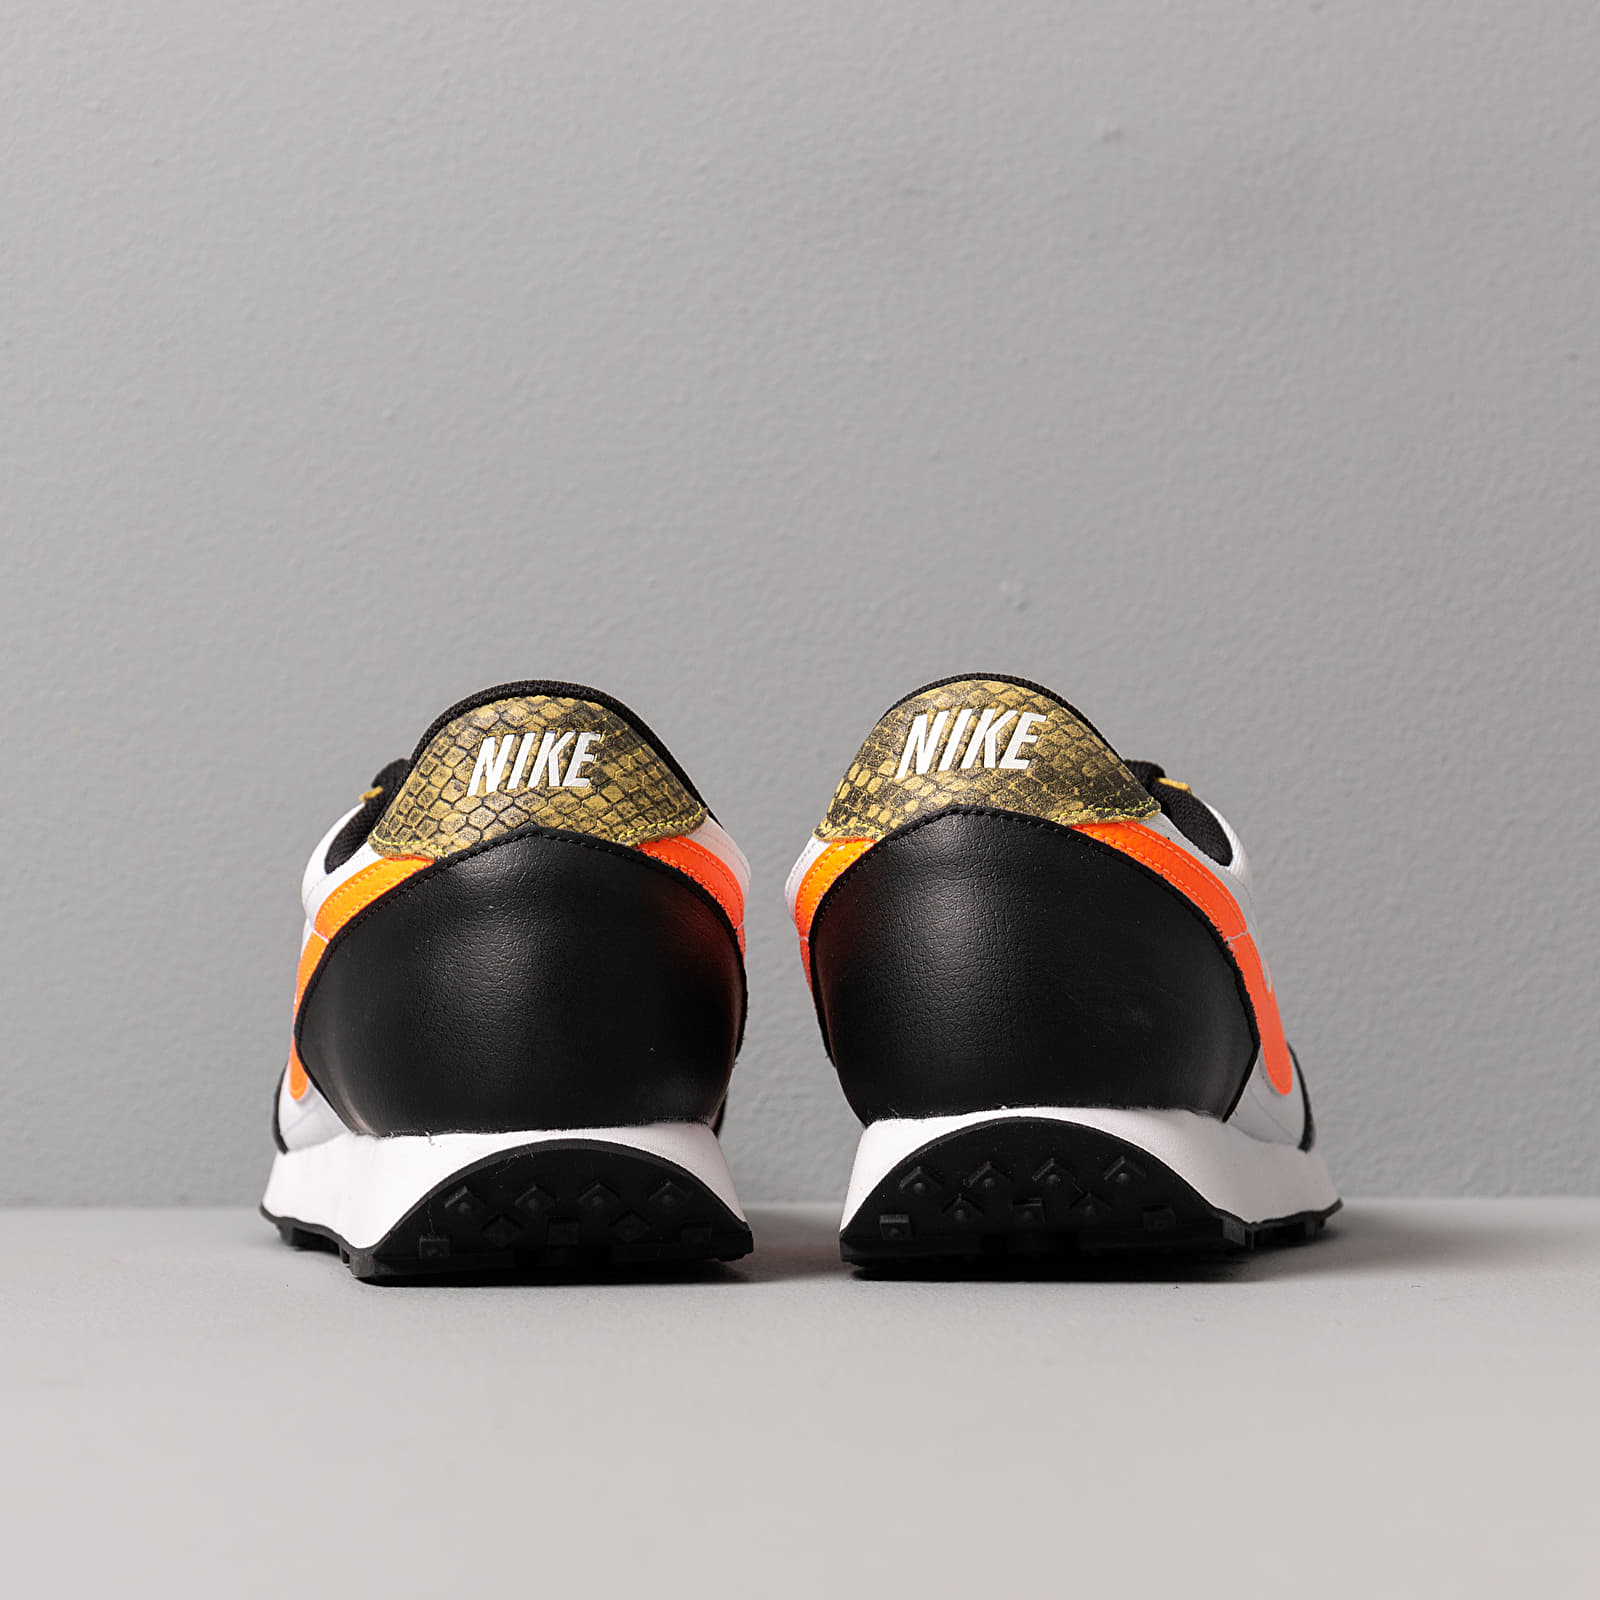 Nike W Daybreak QS Black Total Orange Dynamic Yellow White | Footshop